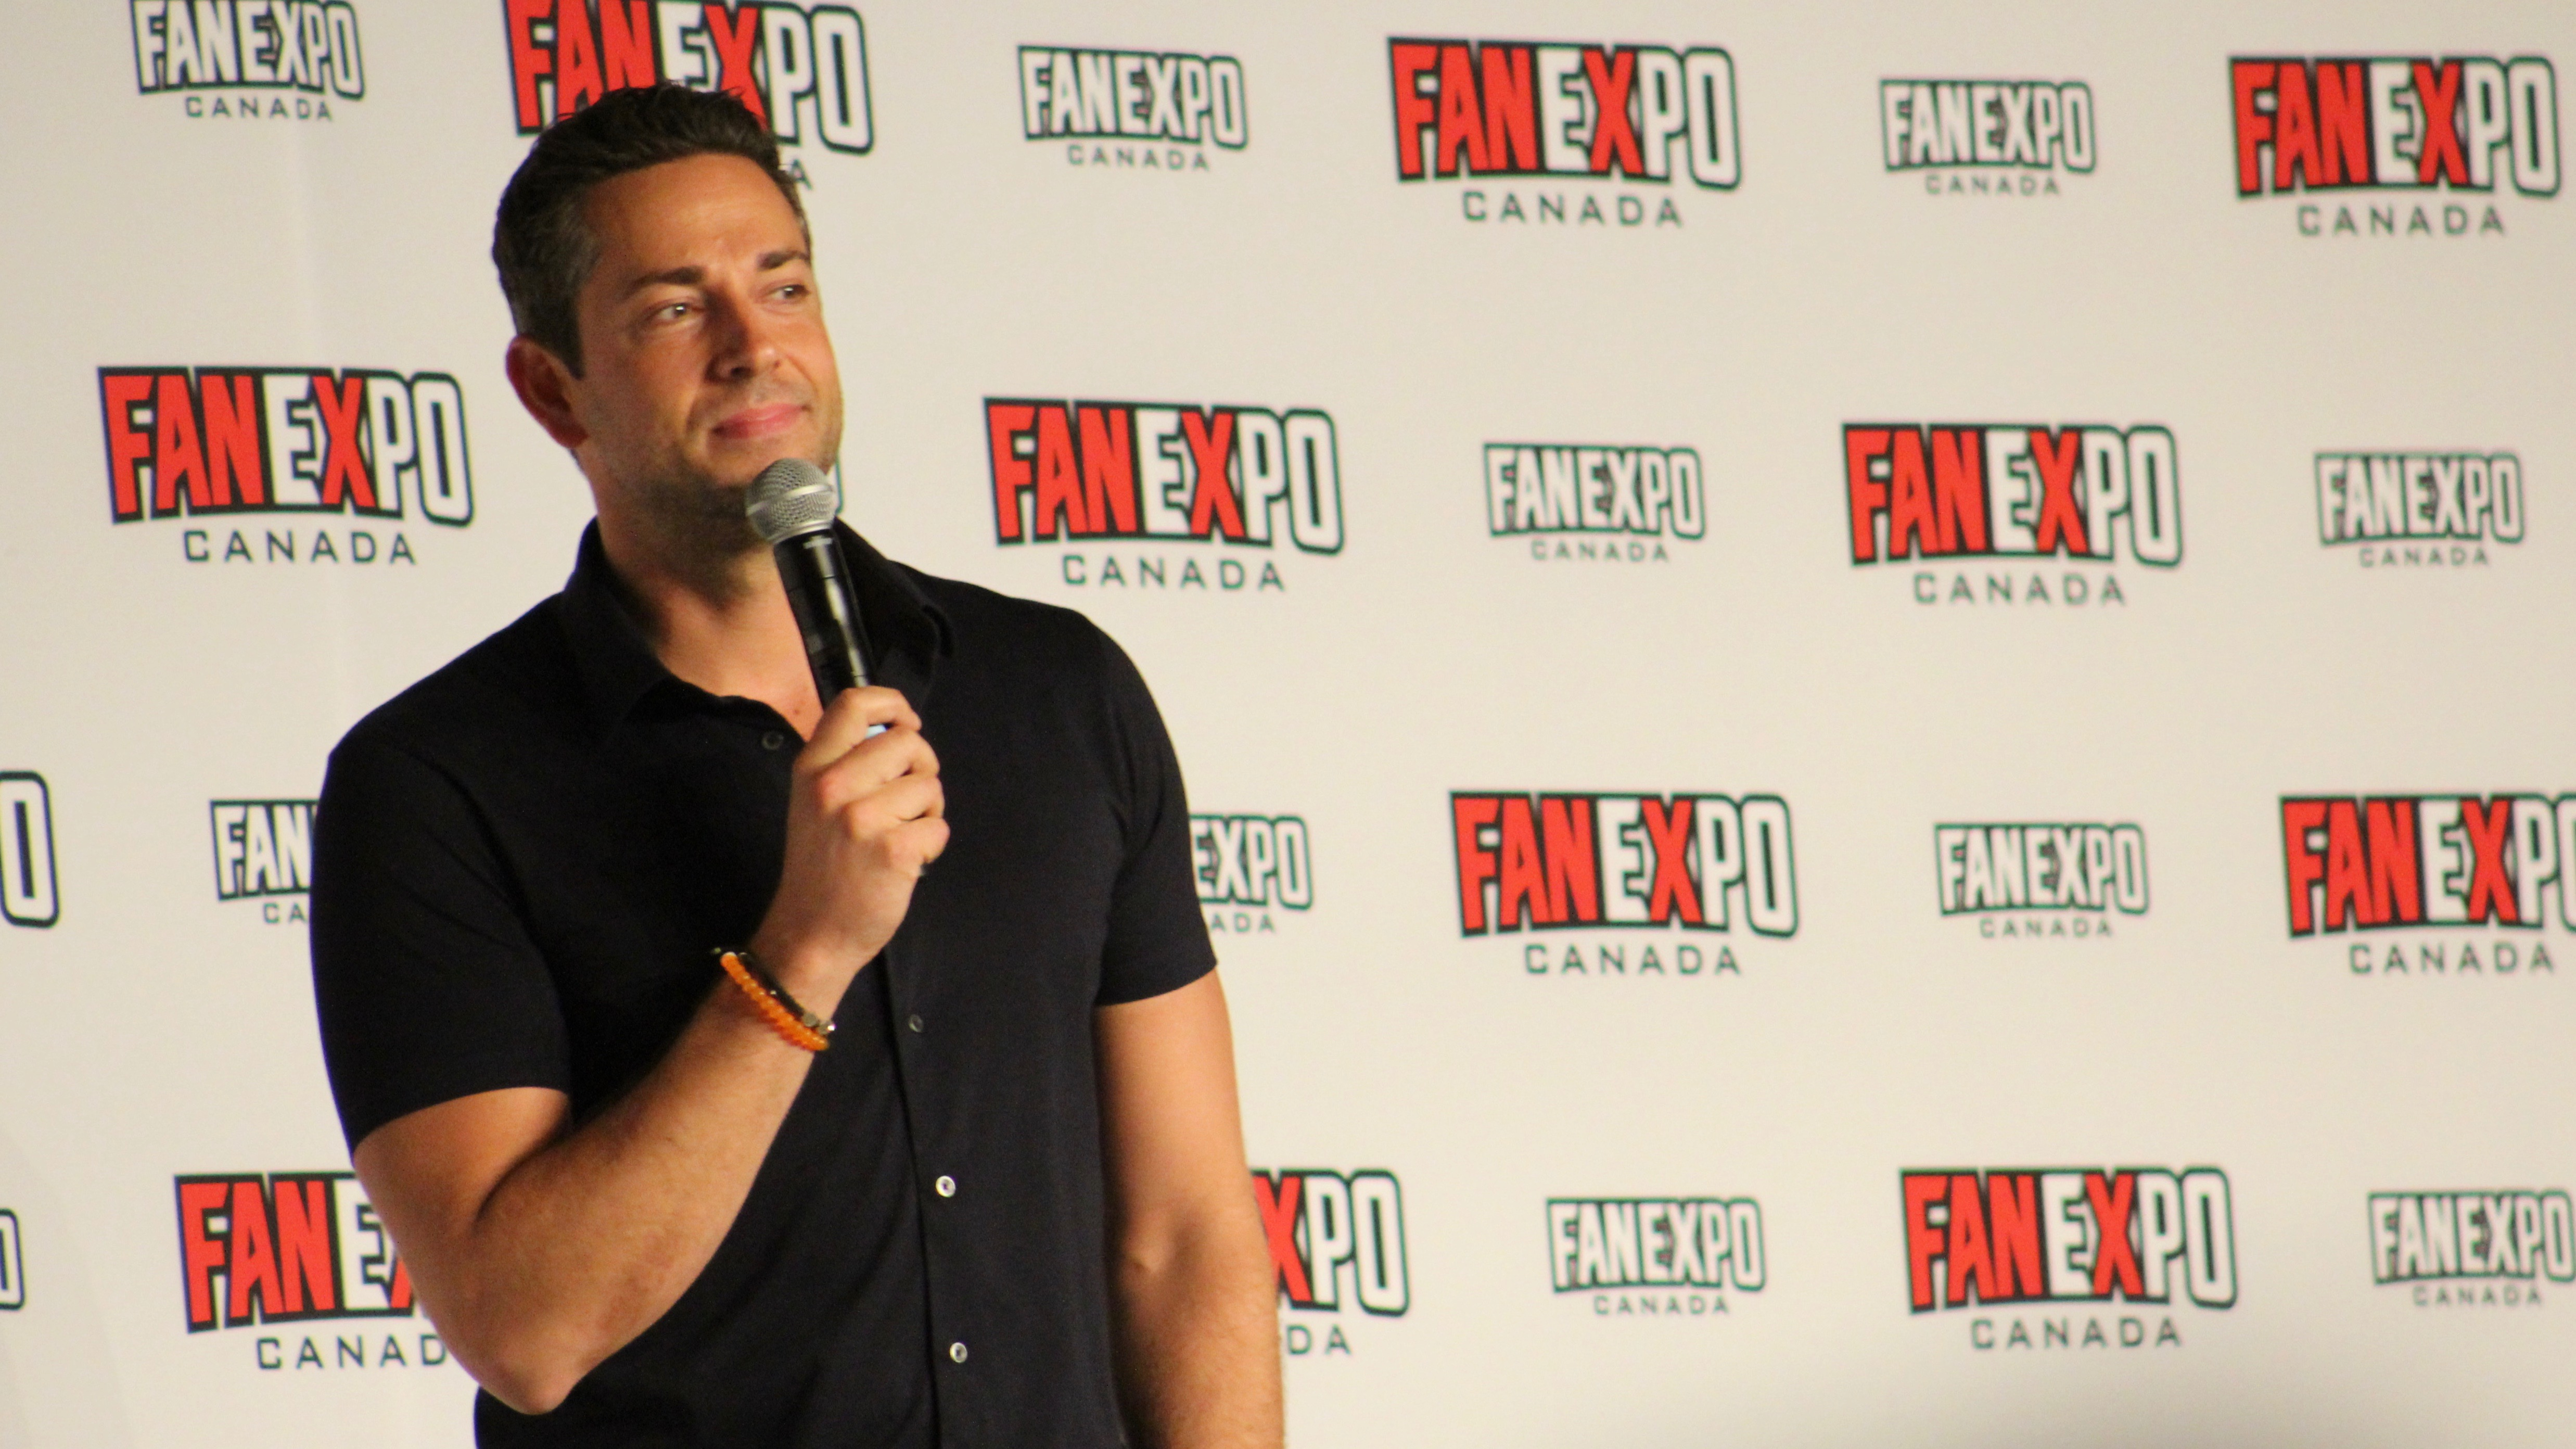 Zachary Levi with a microphone at his Q&A panel at FanExpo Canada in Toronto on August 24, 2019.